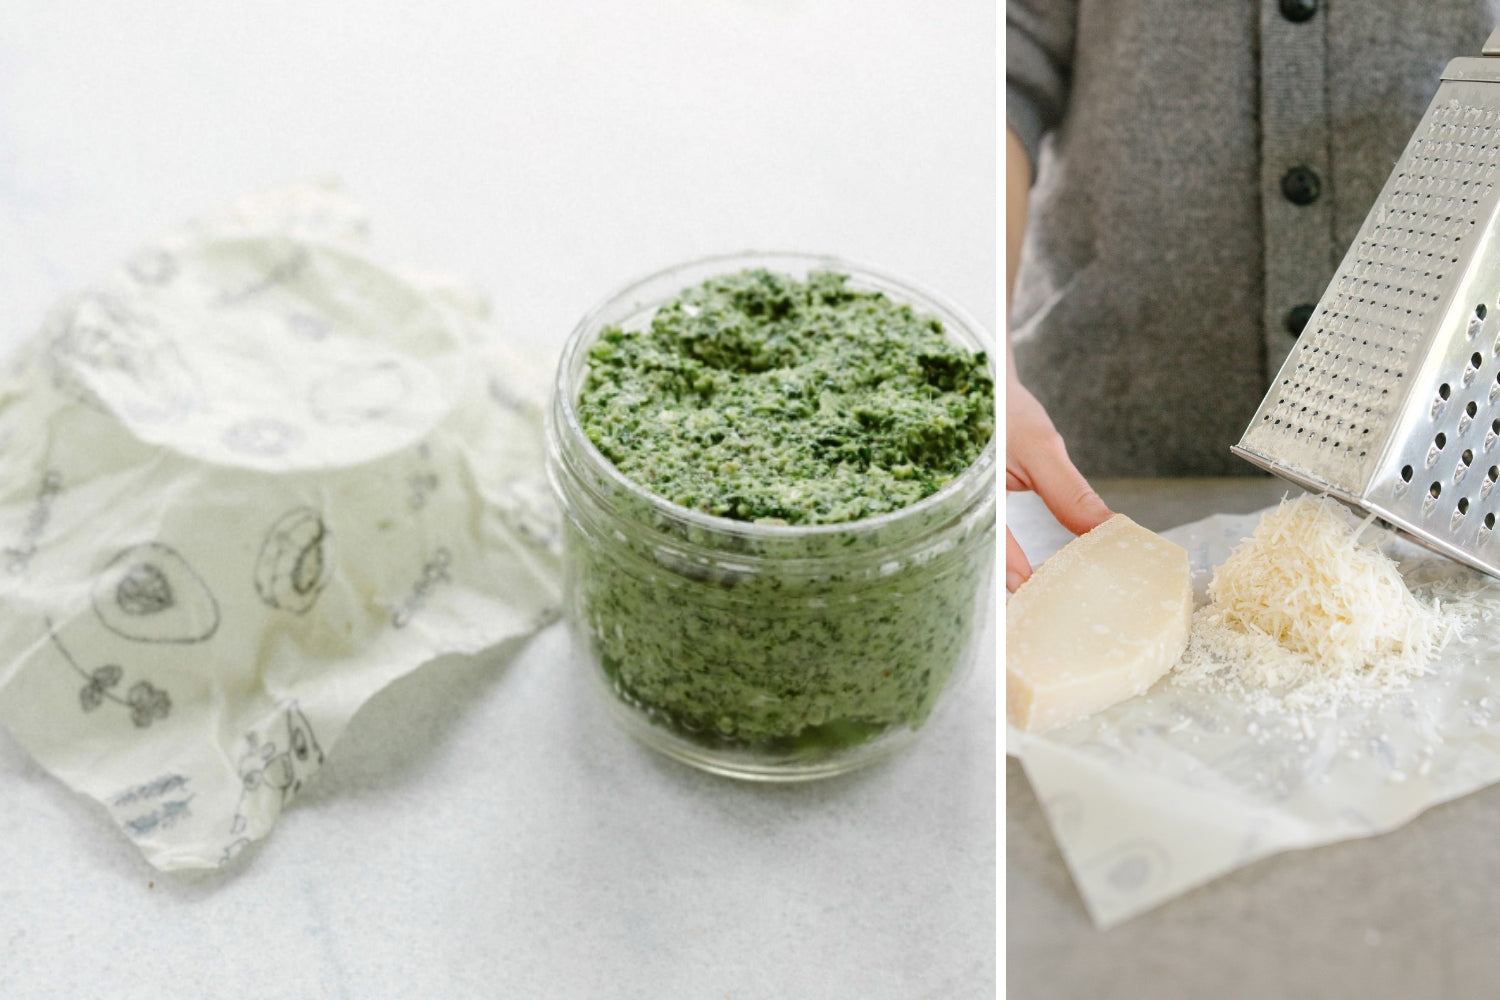 Using Abeego to cover kale pesto and cheese | beeswax wraps plastic wrap alternative